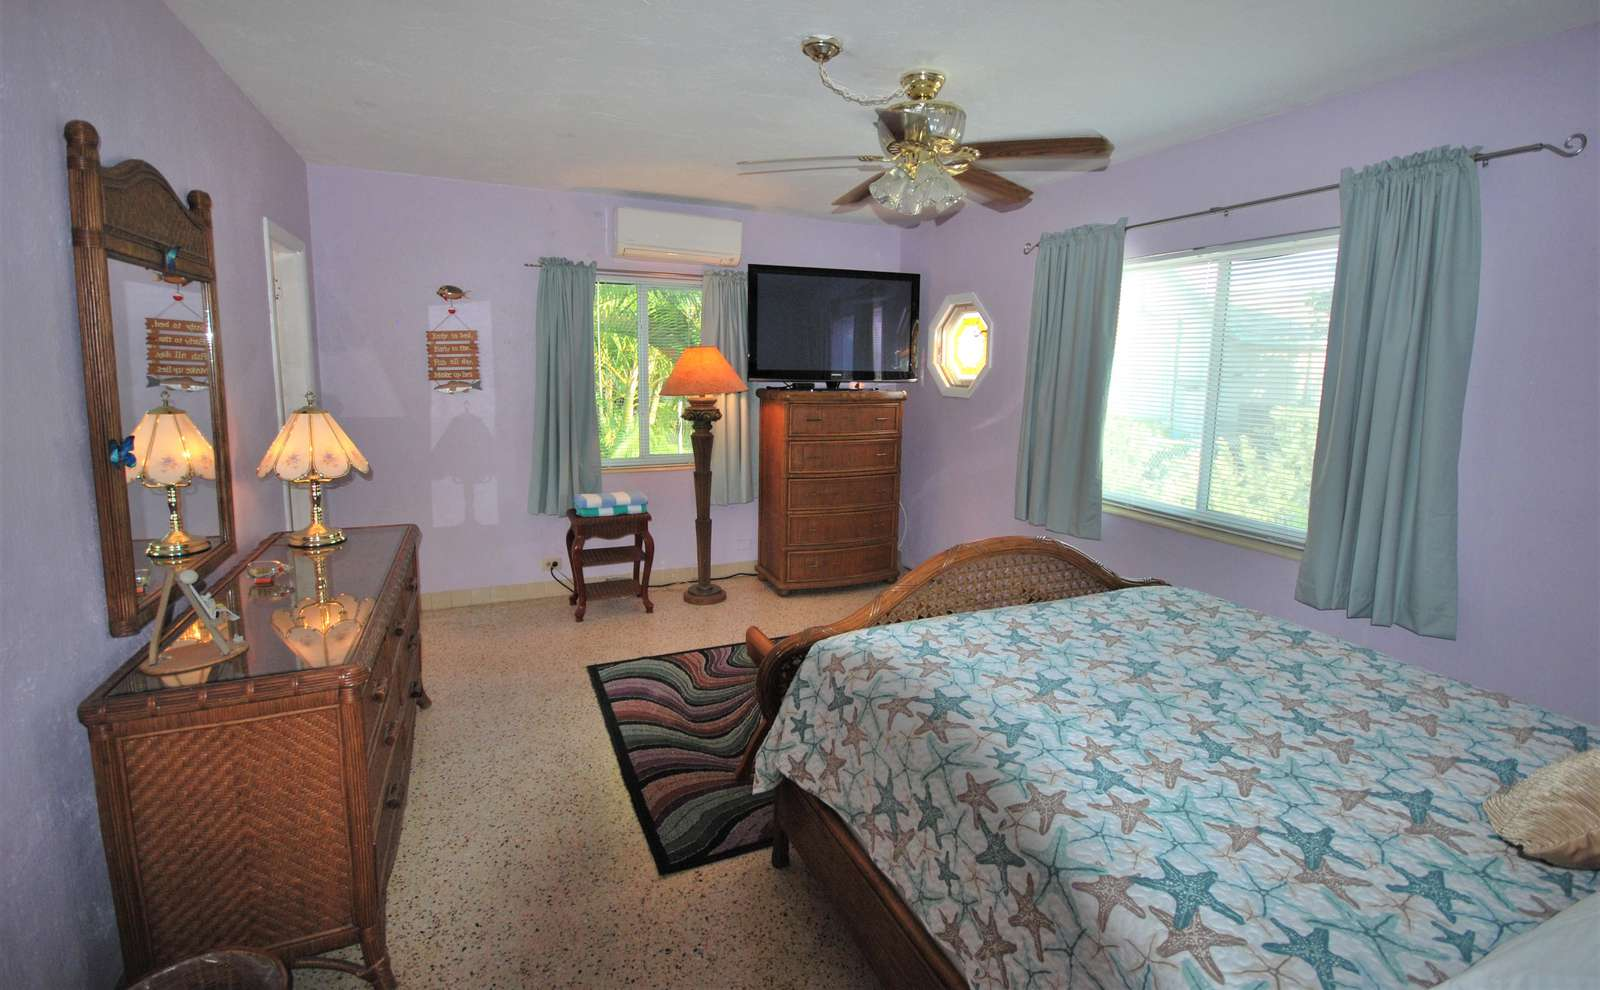 Maaster Bedroom also has dressers, ceiling fan, and largeflat screen TV